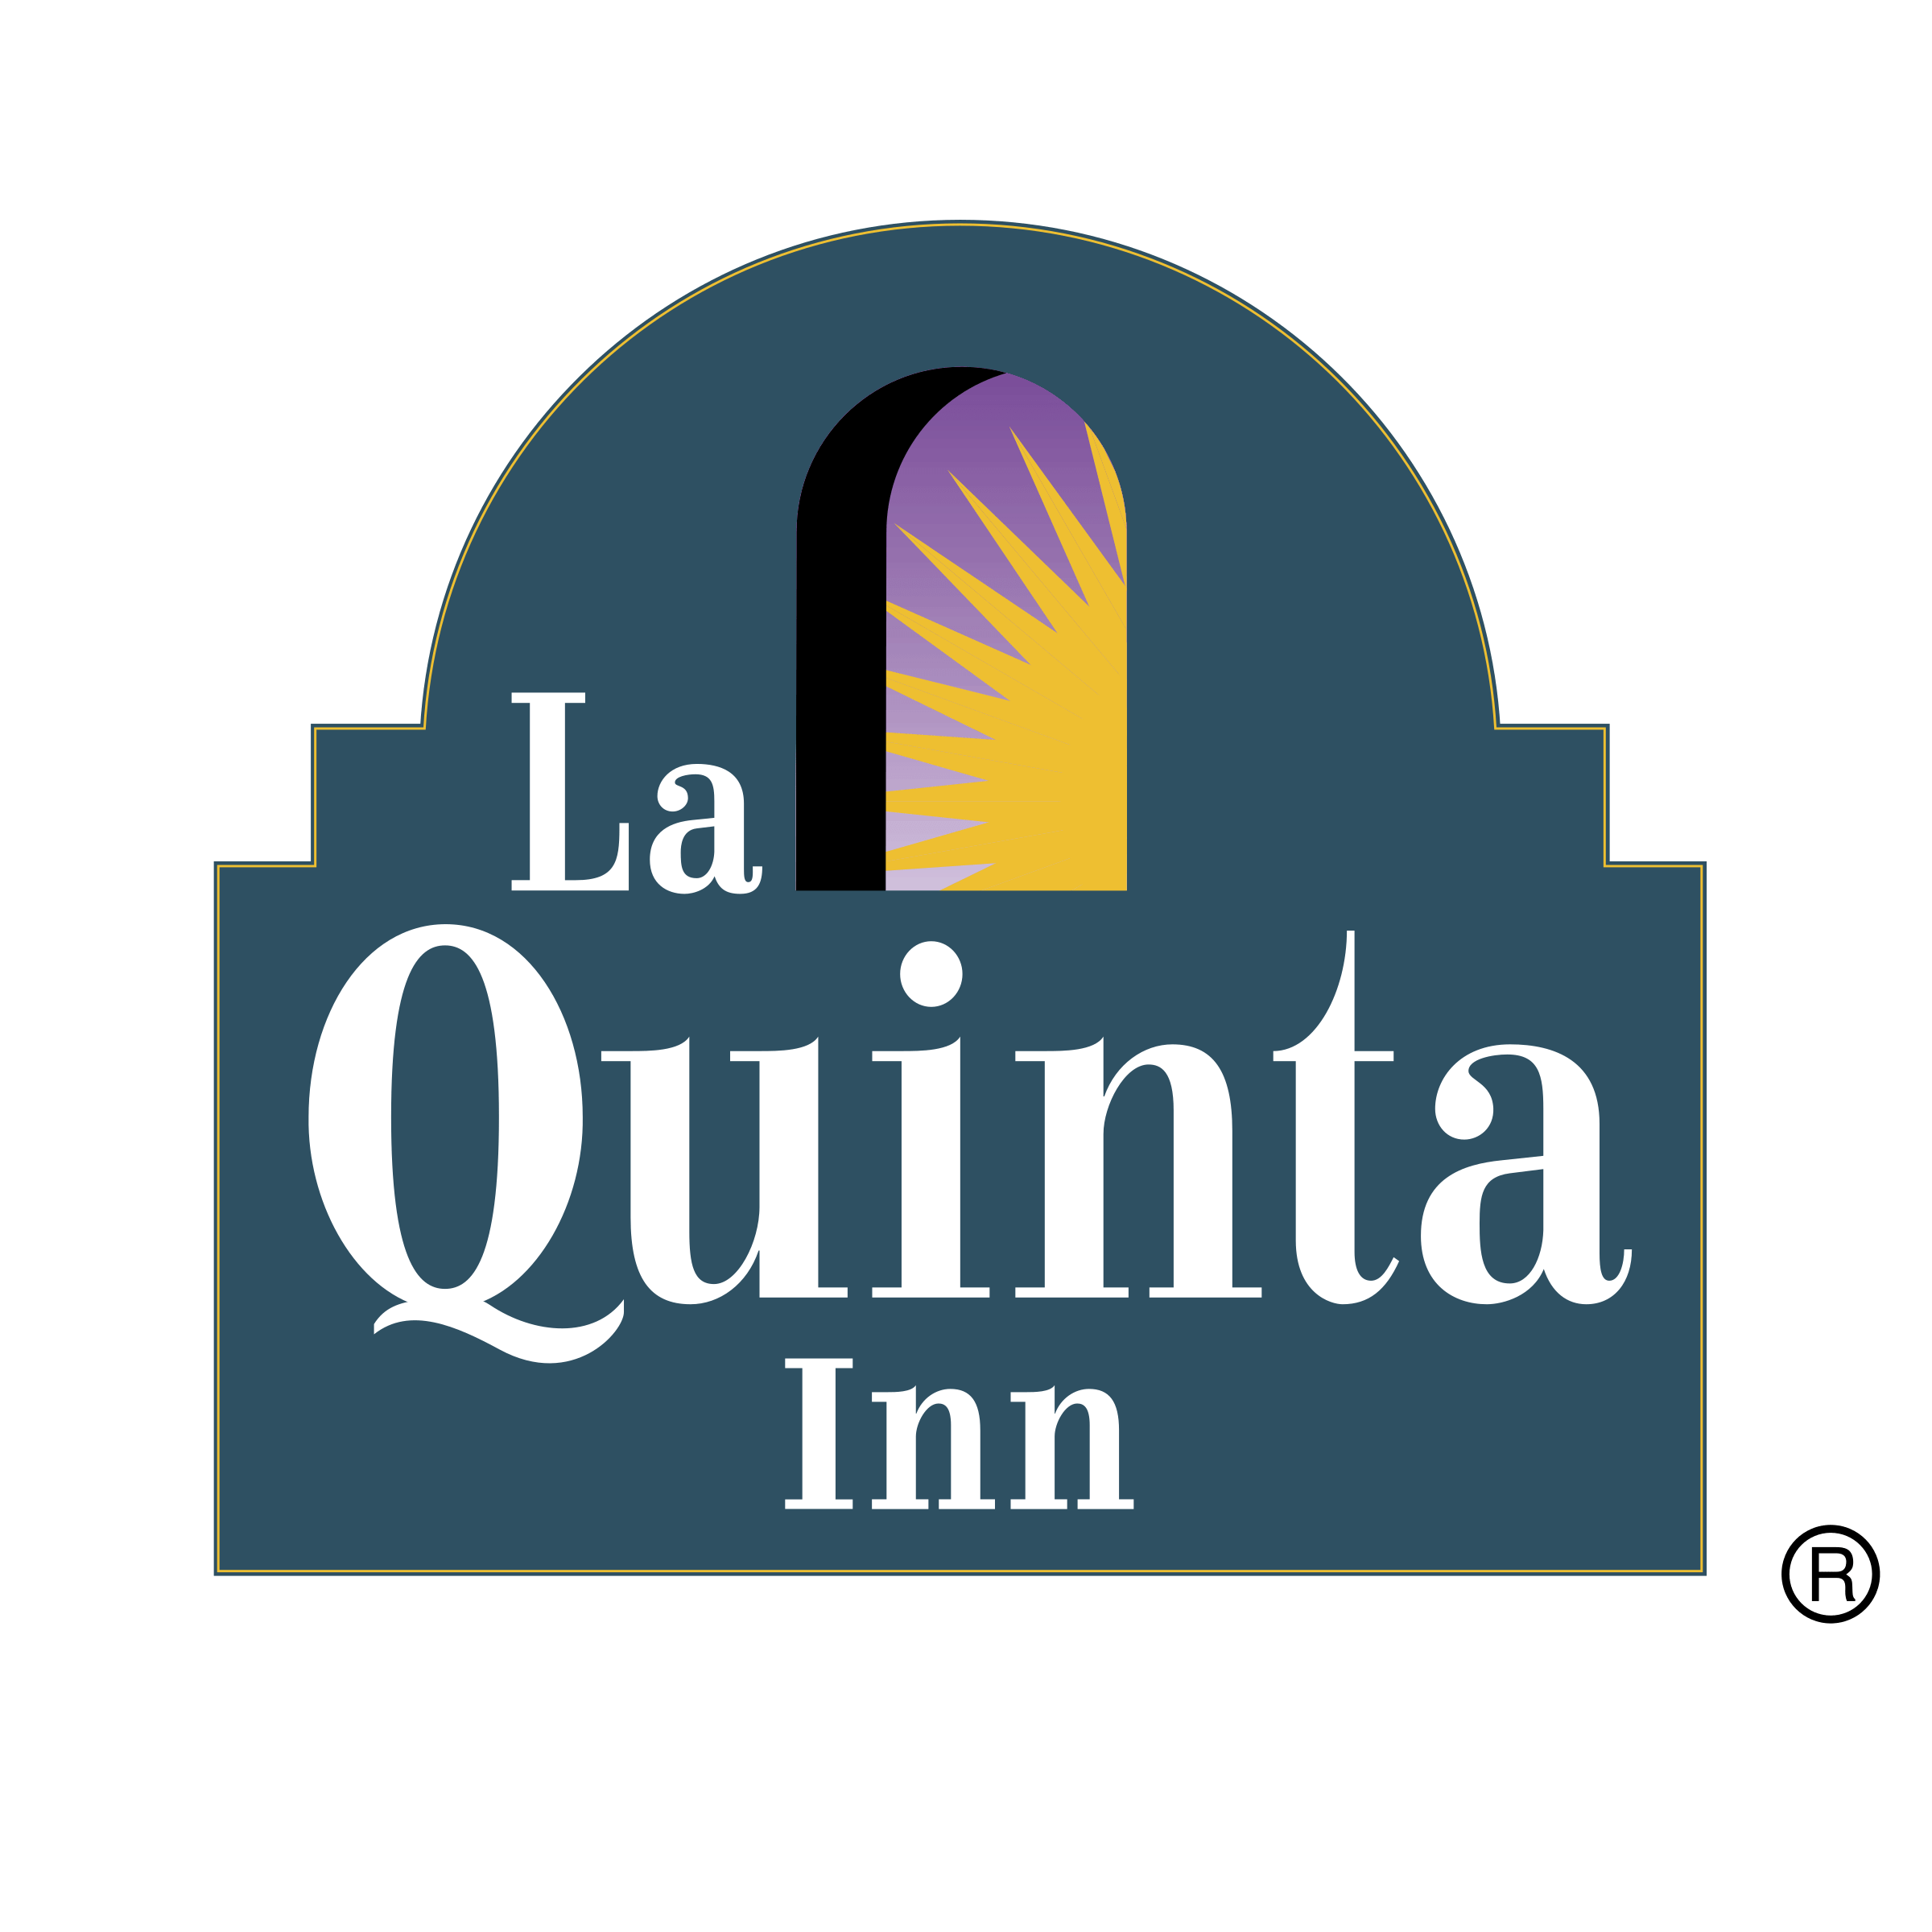 Laquinta Inn and Suites